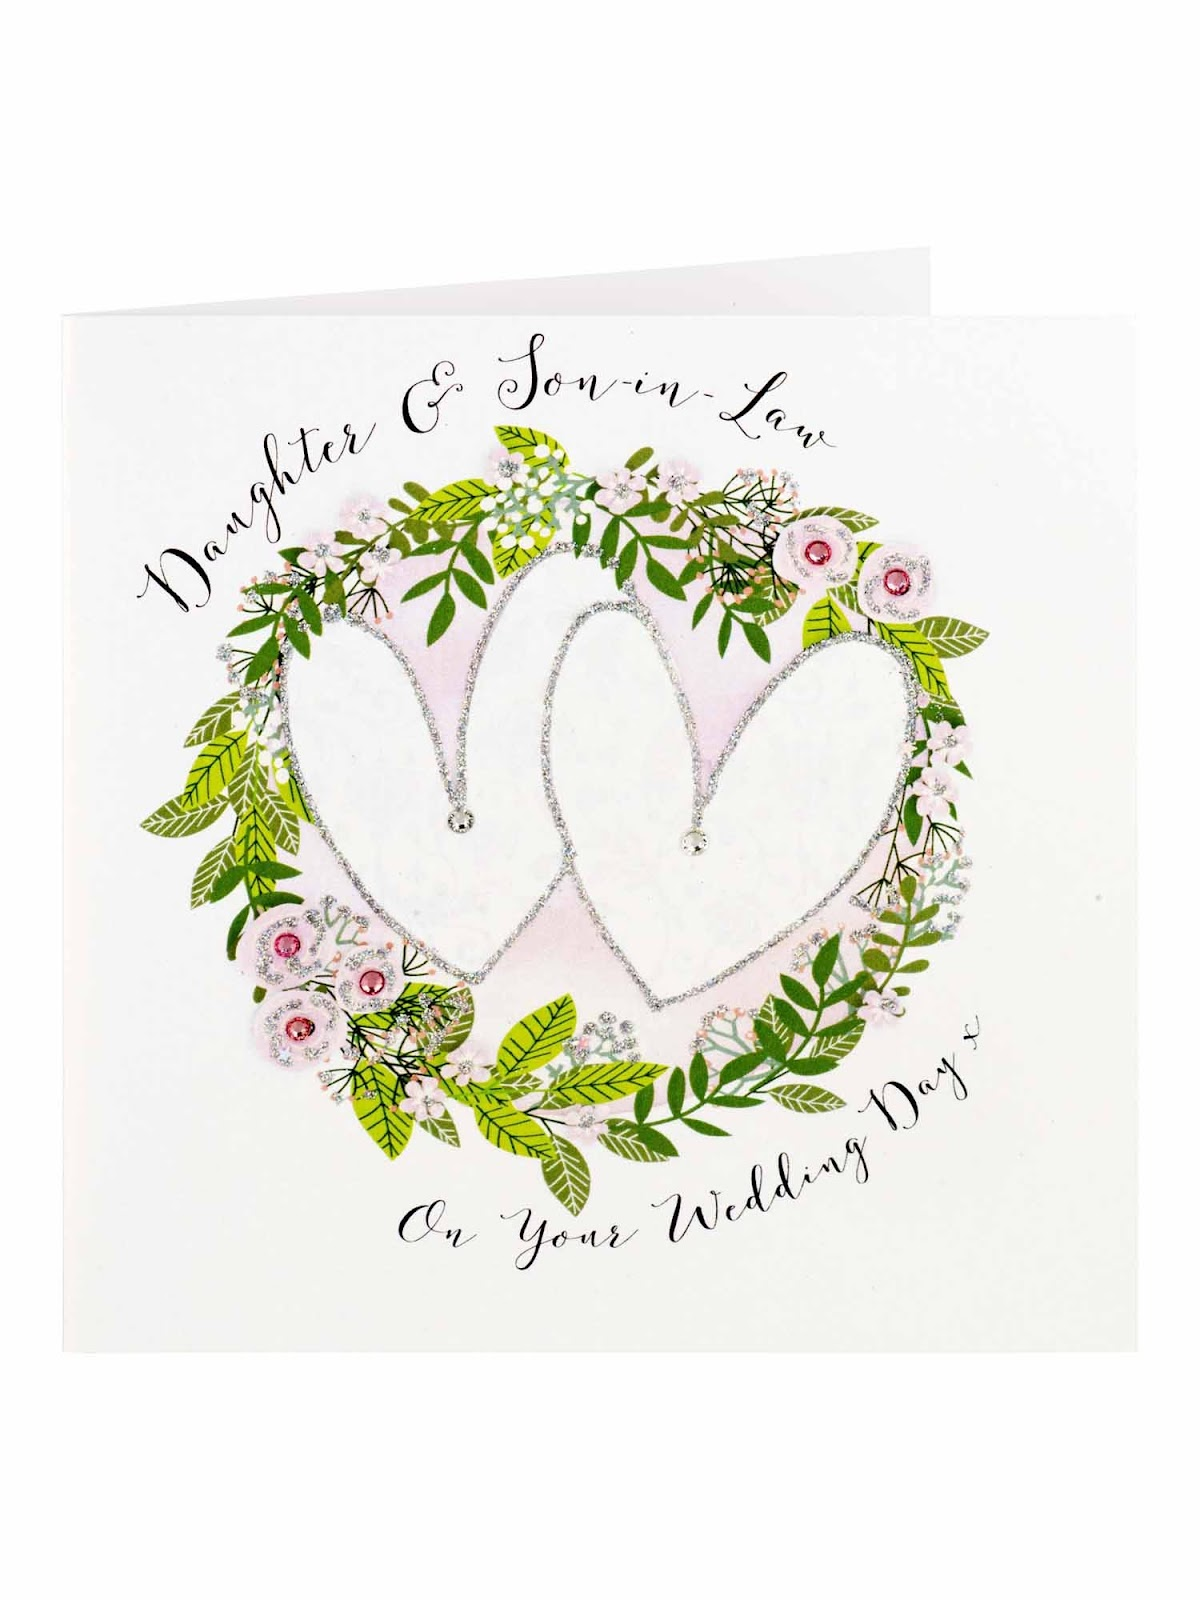 Ways to personalise a wedding gift; Clintons Daughter And Son In Law Hearts Floral Wreath Card